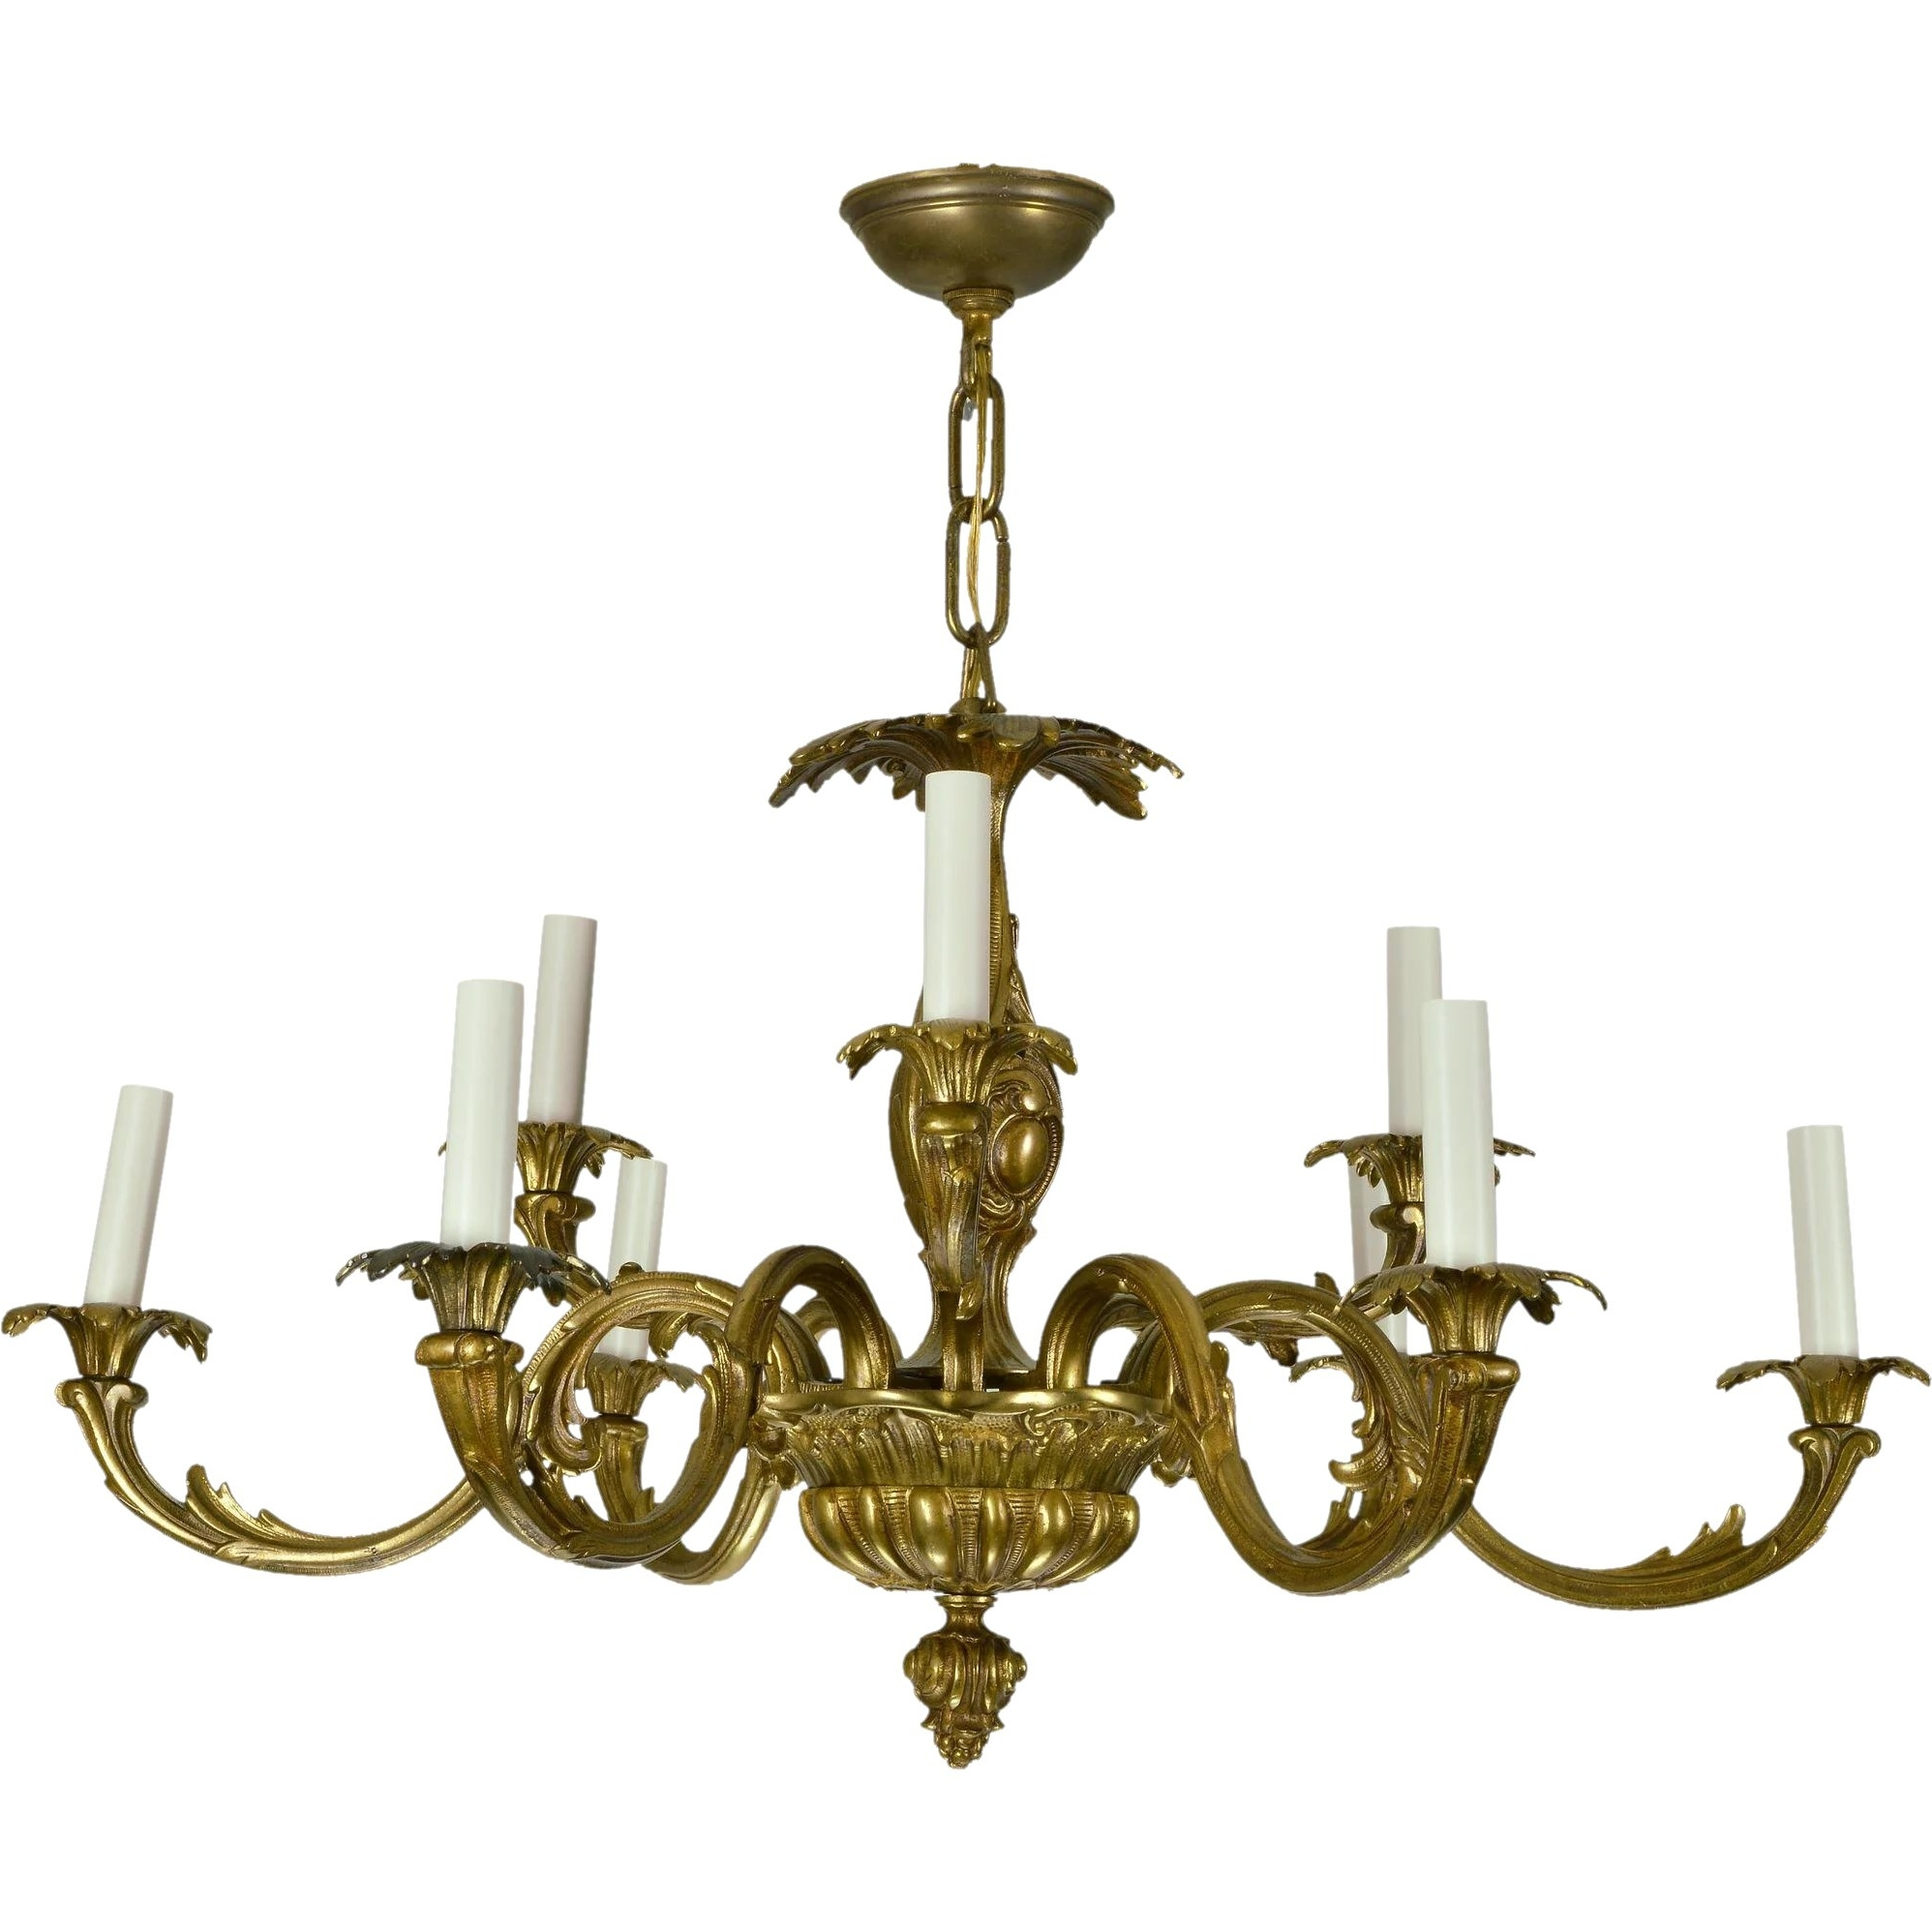 Vintage Brass French Baroque Chandelier : The Old Light Warehouse Inside Most Recent Baroque Chandelier (View 18 of 20)